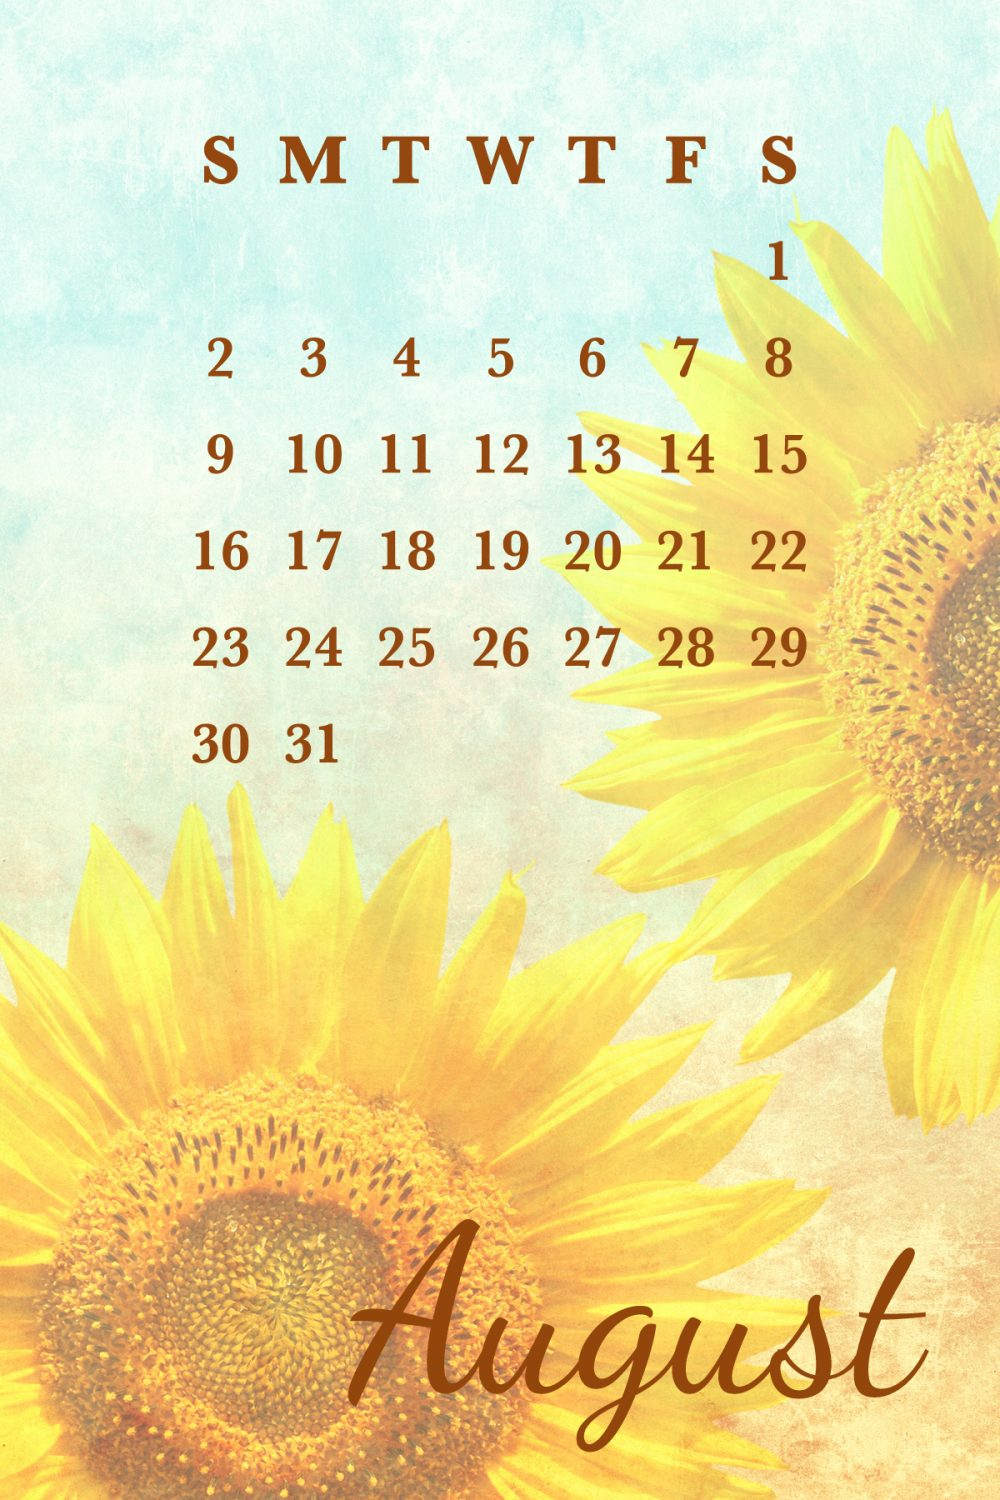 August 2015 free calendar printable and smartphone backgrounds